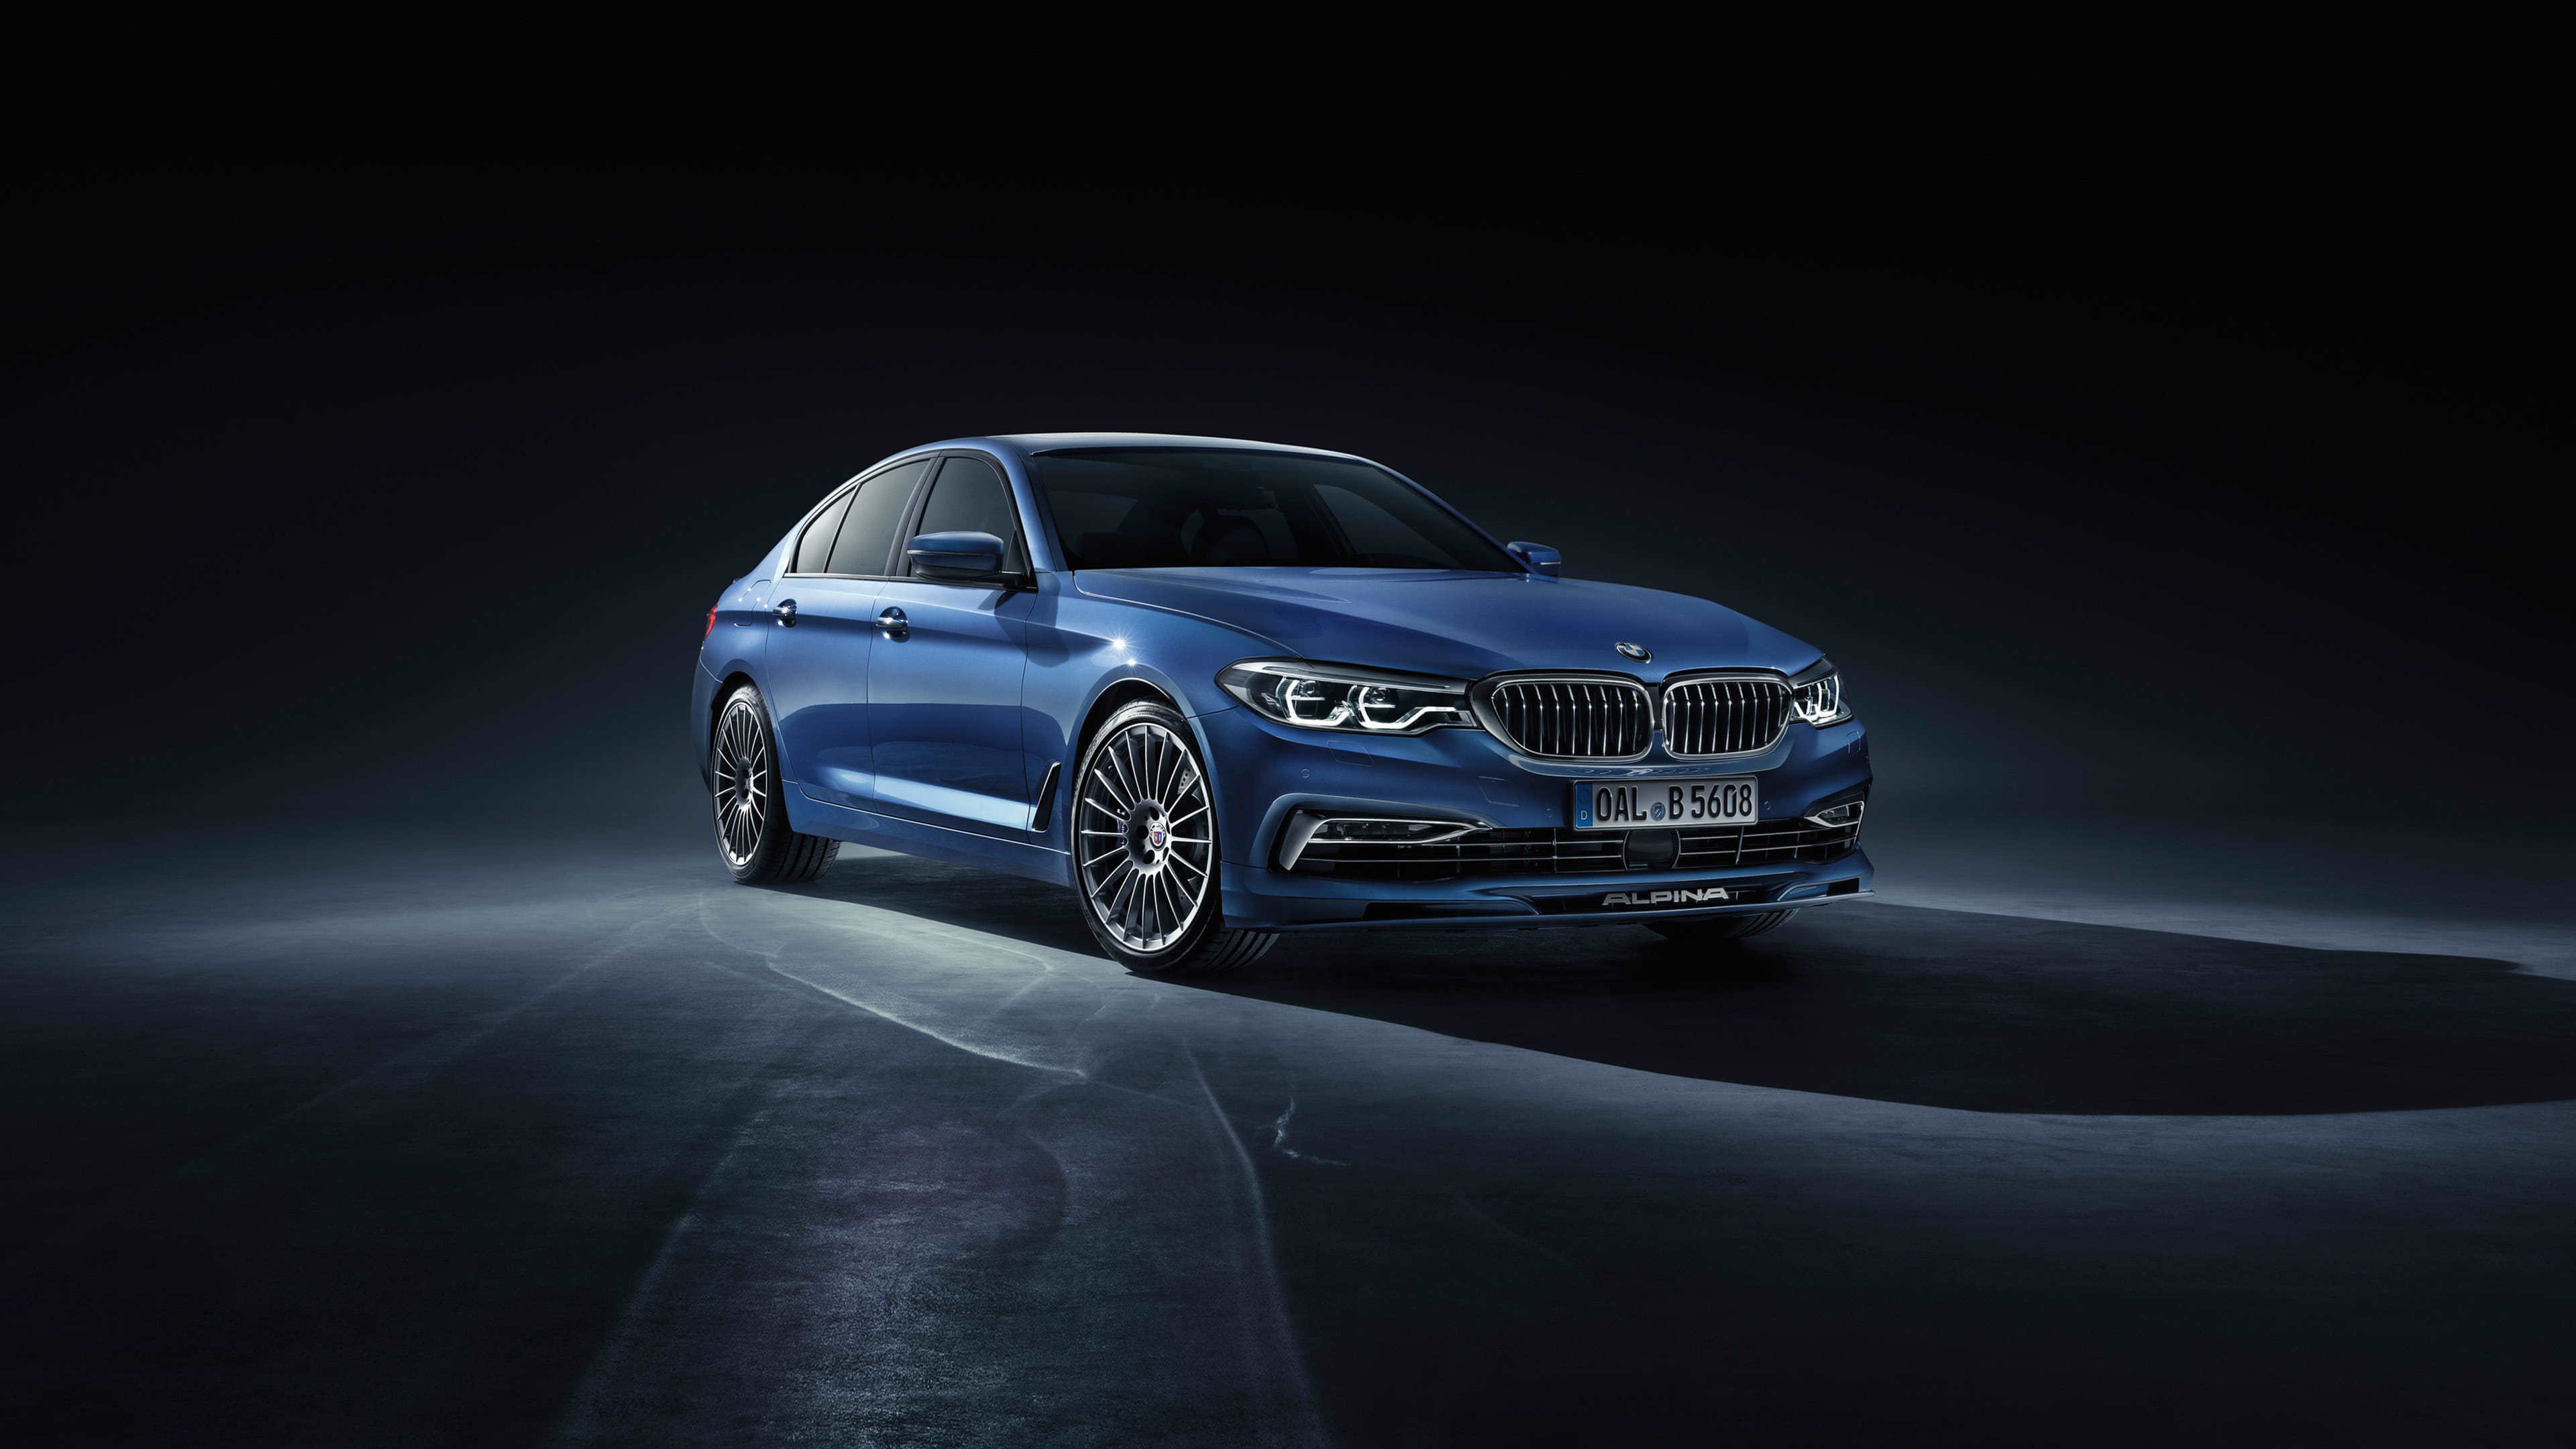 bmw alpina b5 biturbo uhd 4k wallpaper